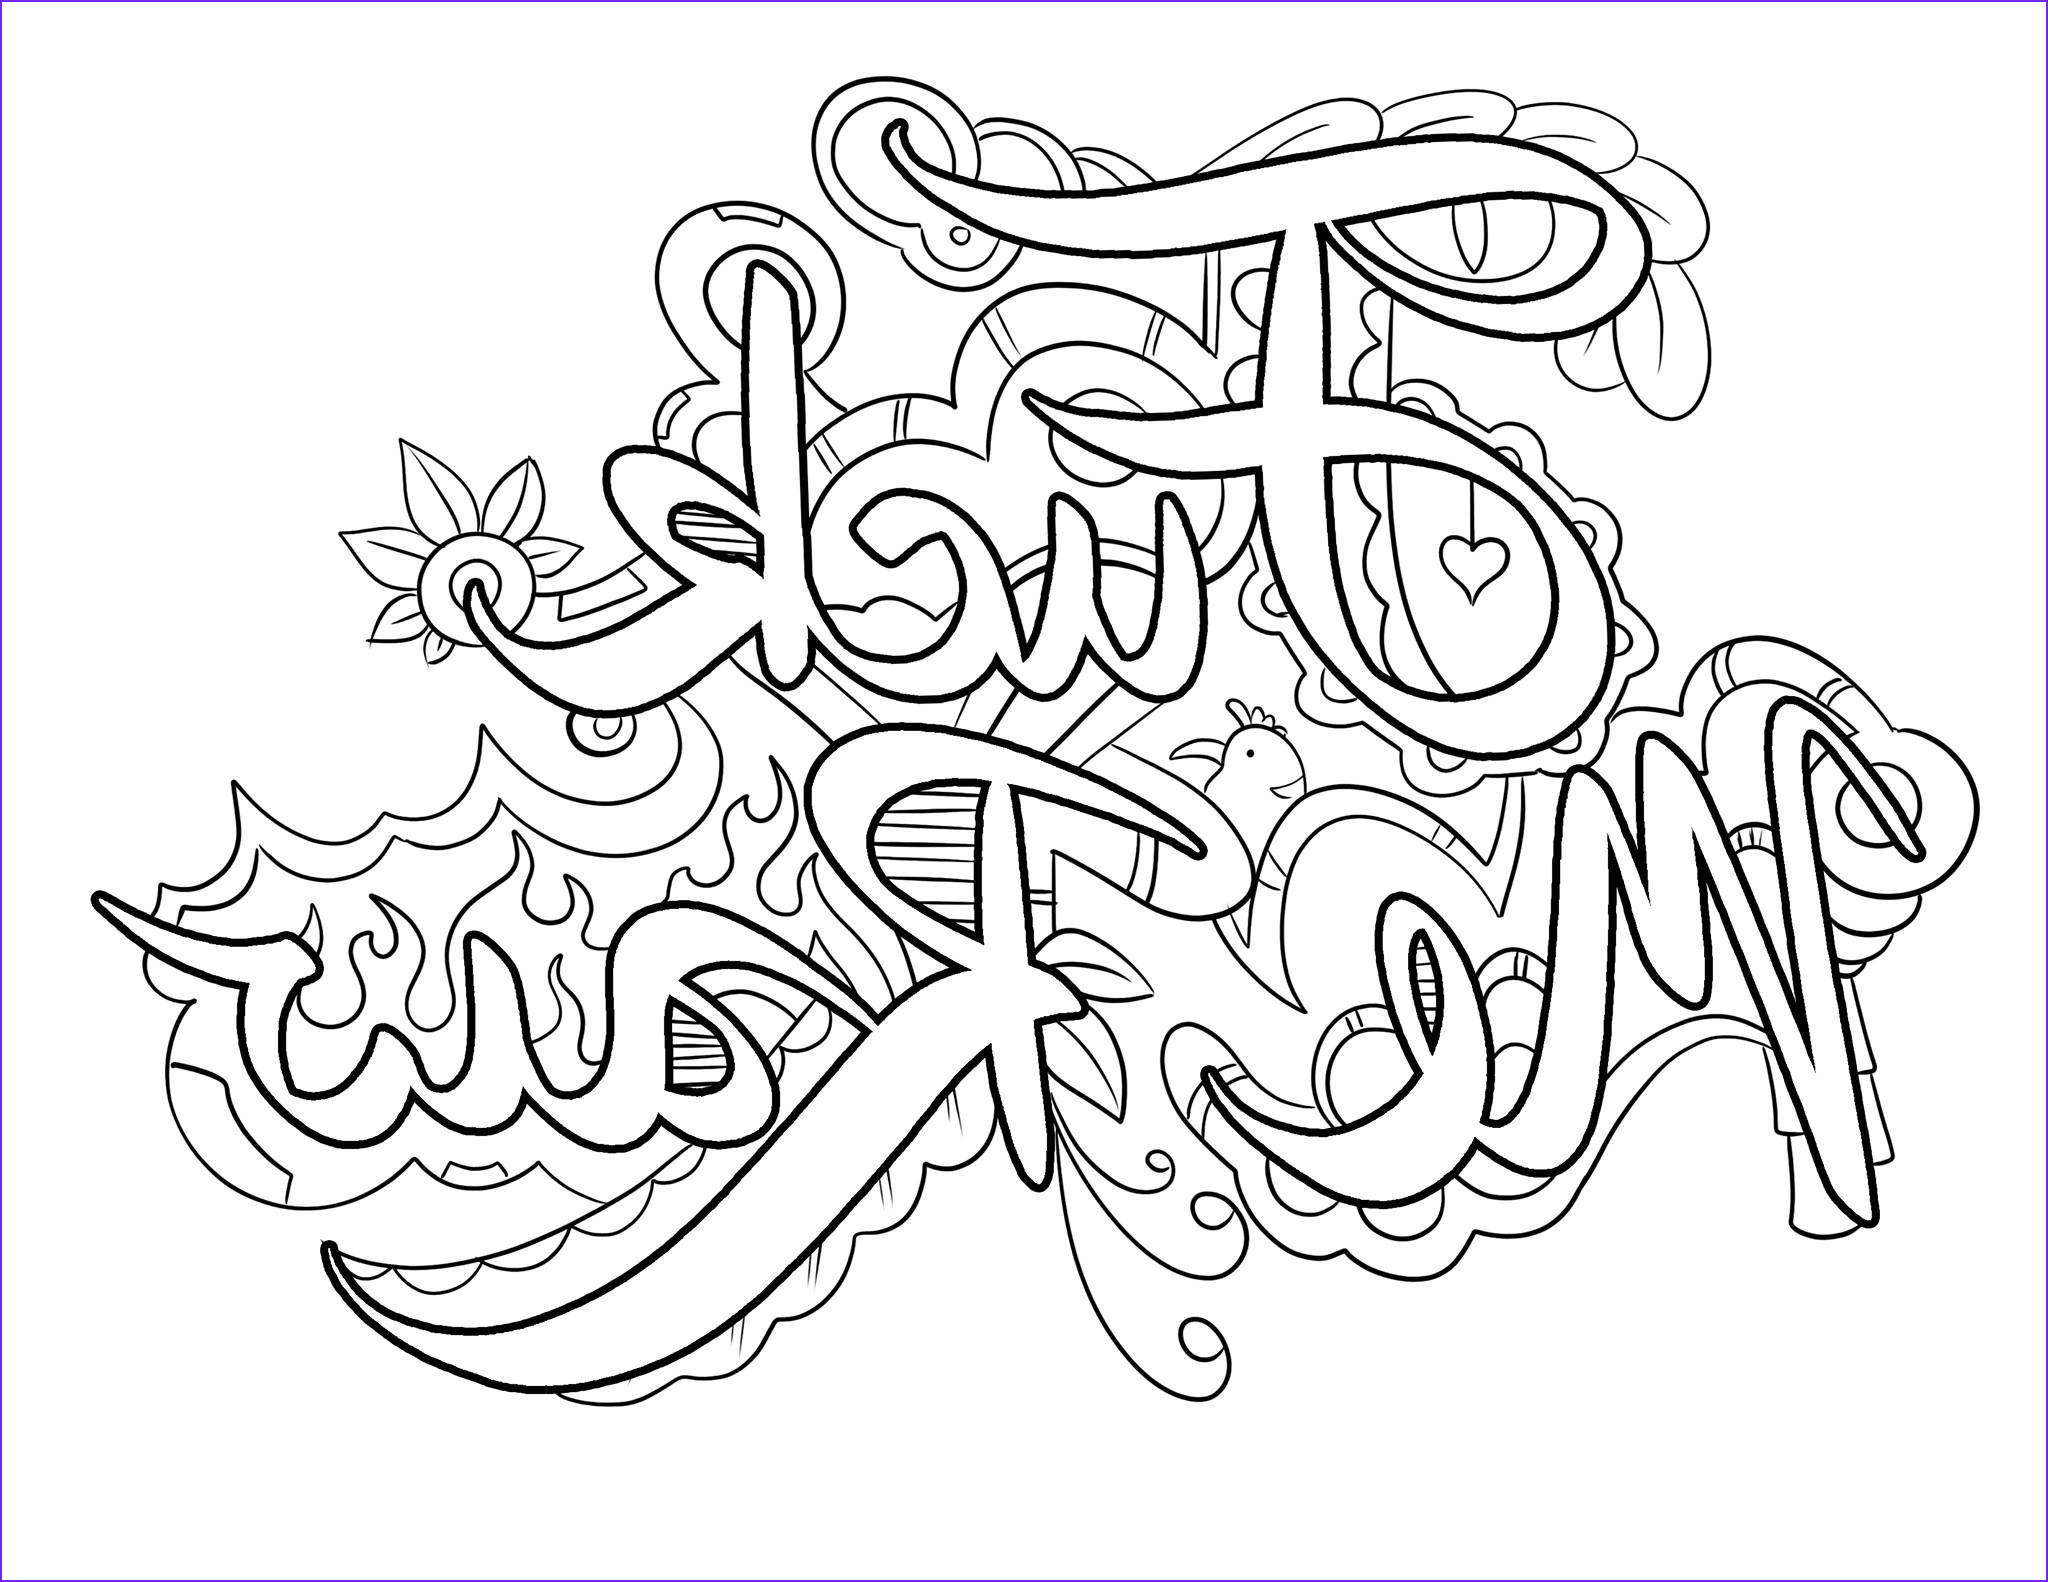 Swear Word Coloring Pages Printable Beautiful Photos Pin By Angie Harris On Printables